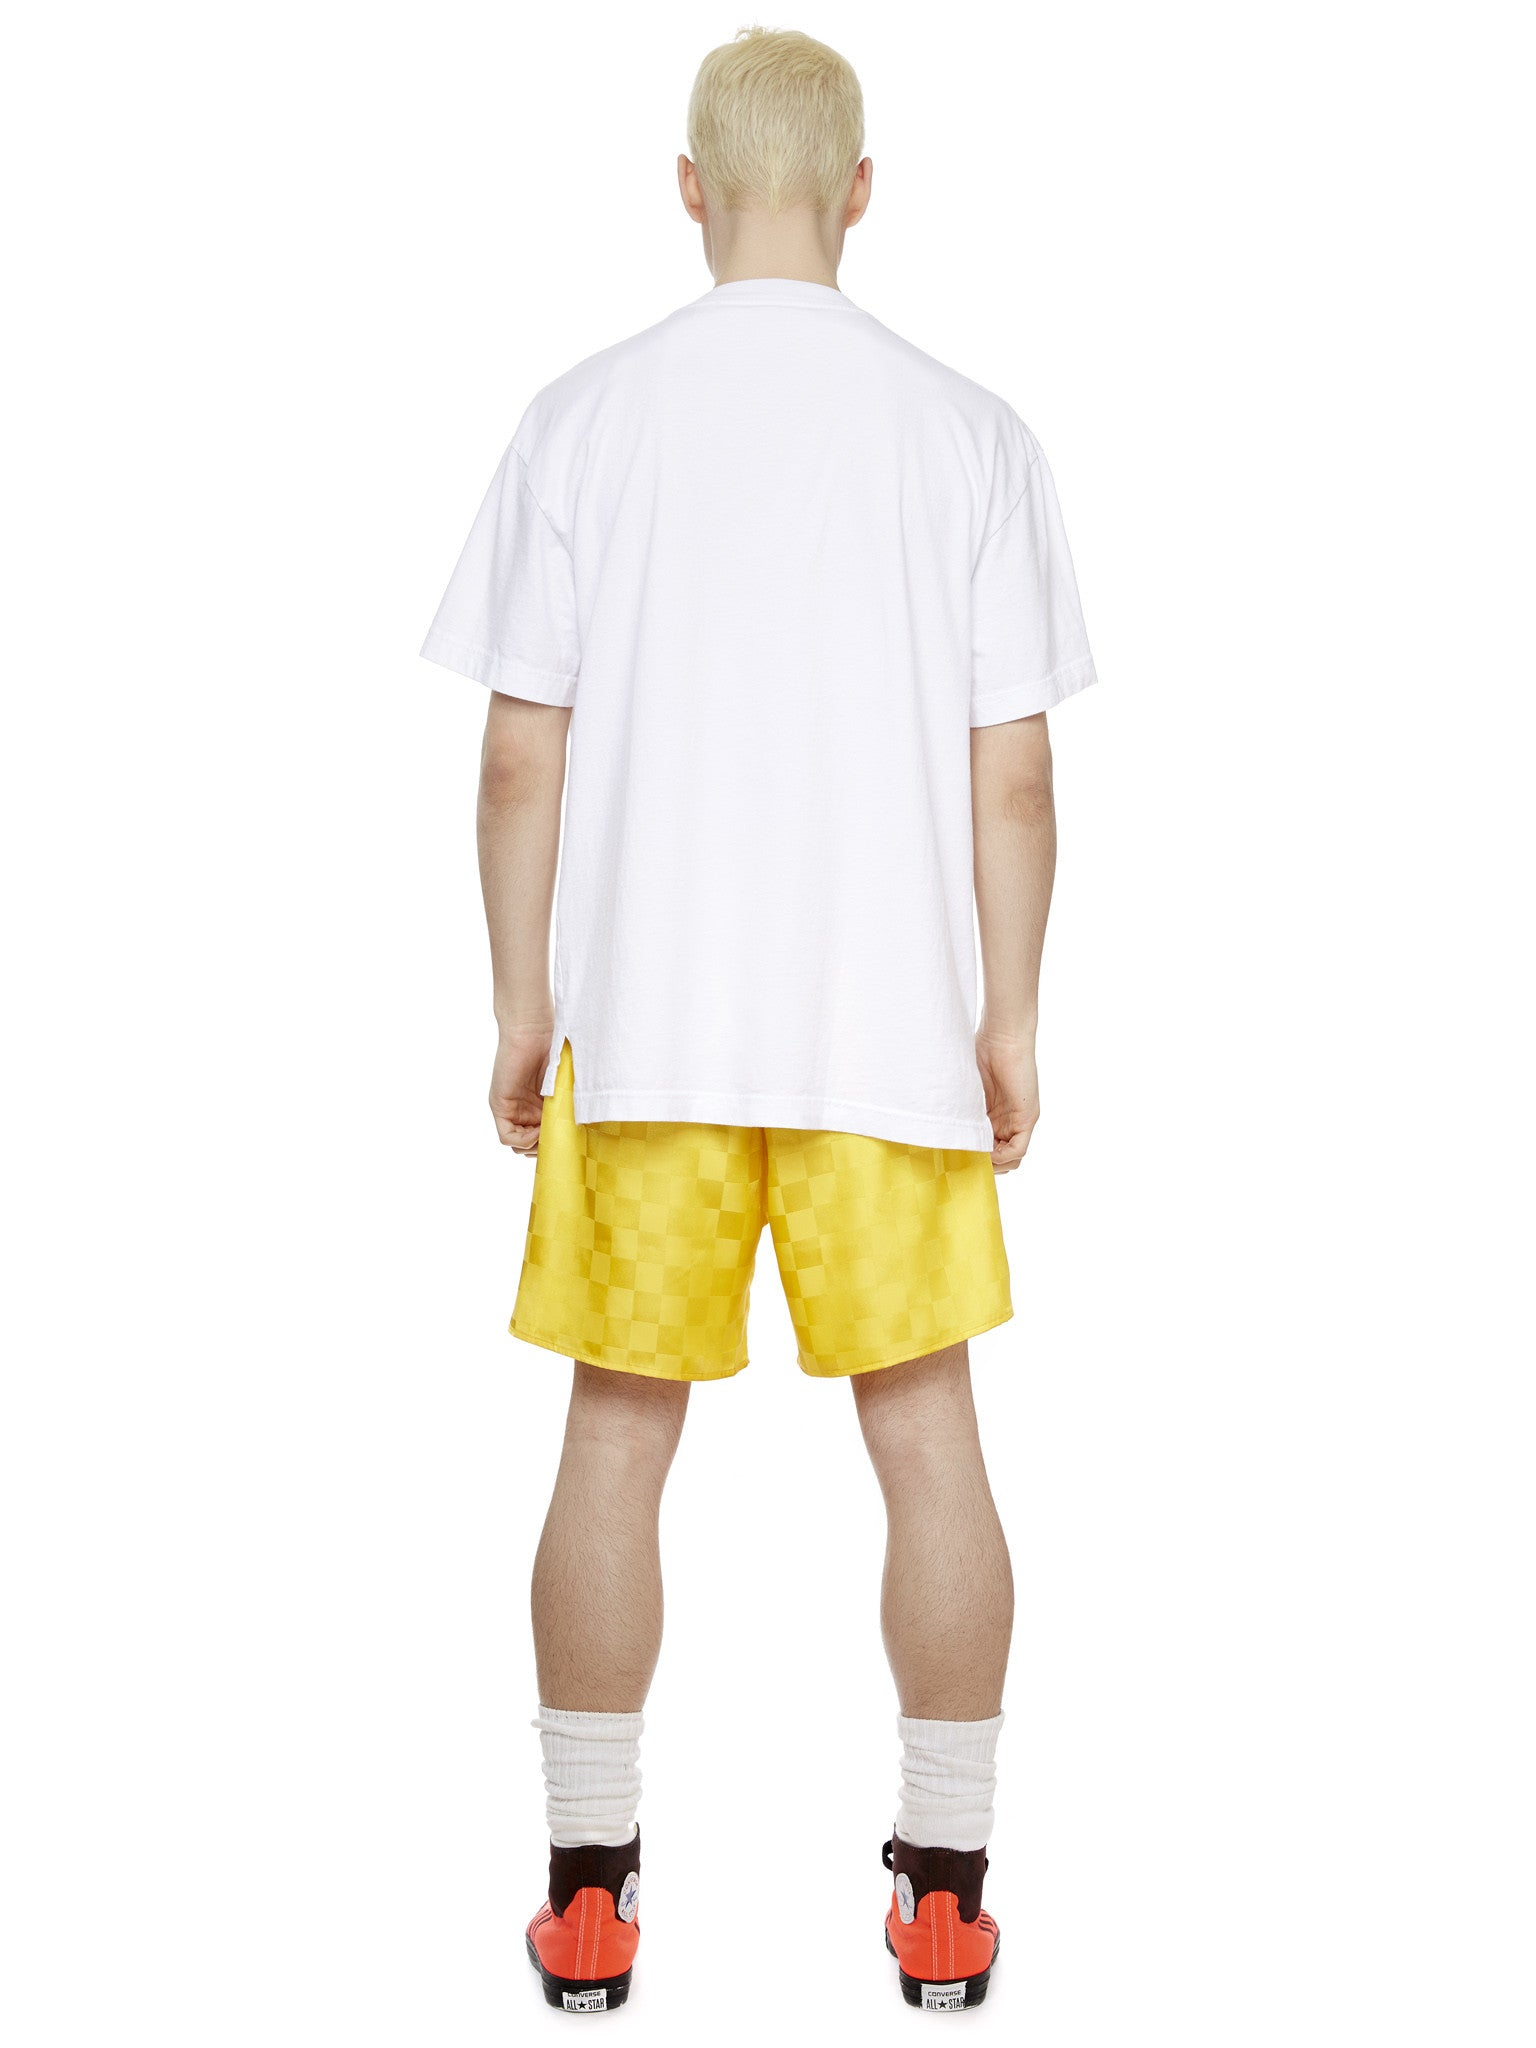 Soccer Short in Yellow